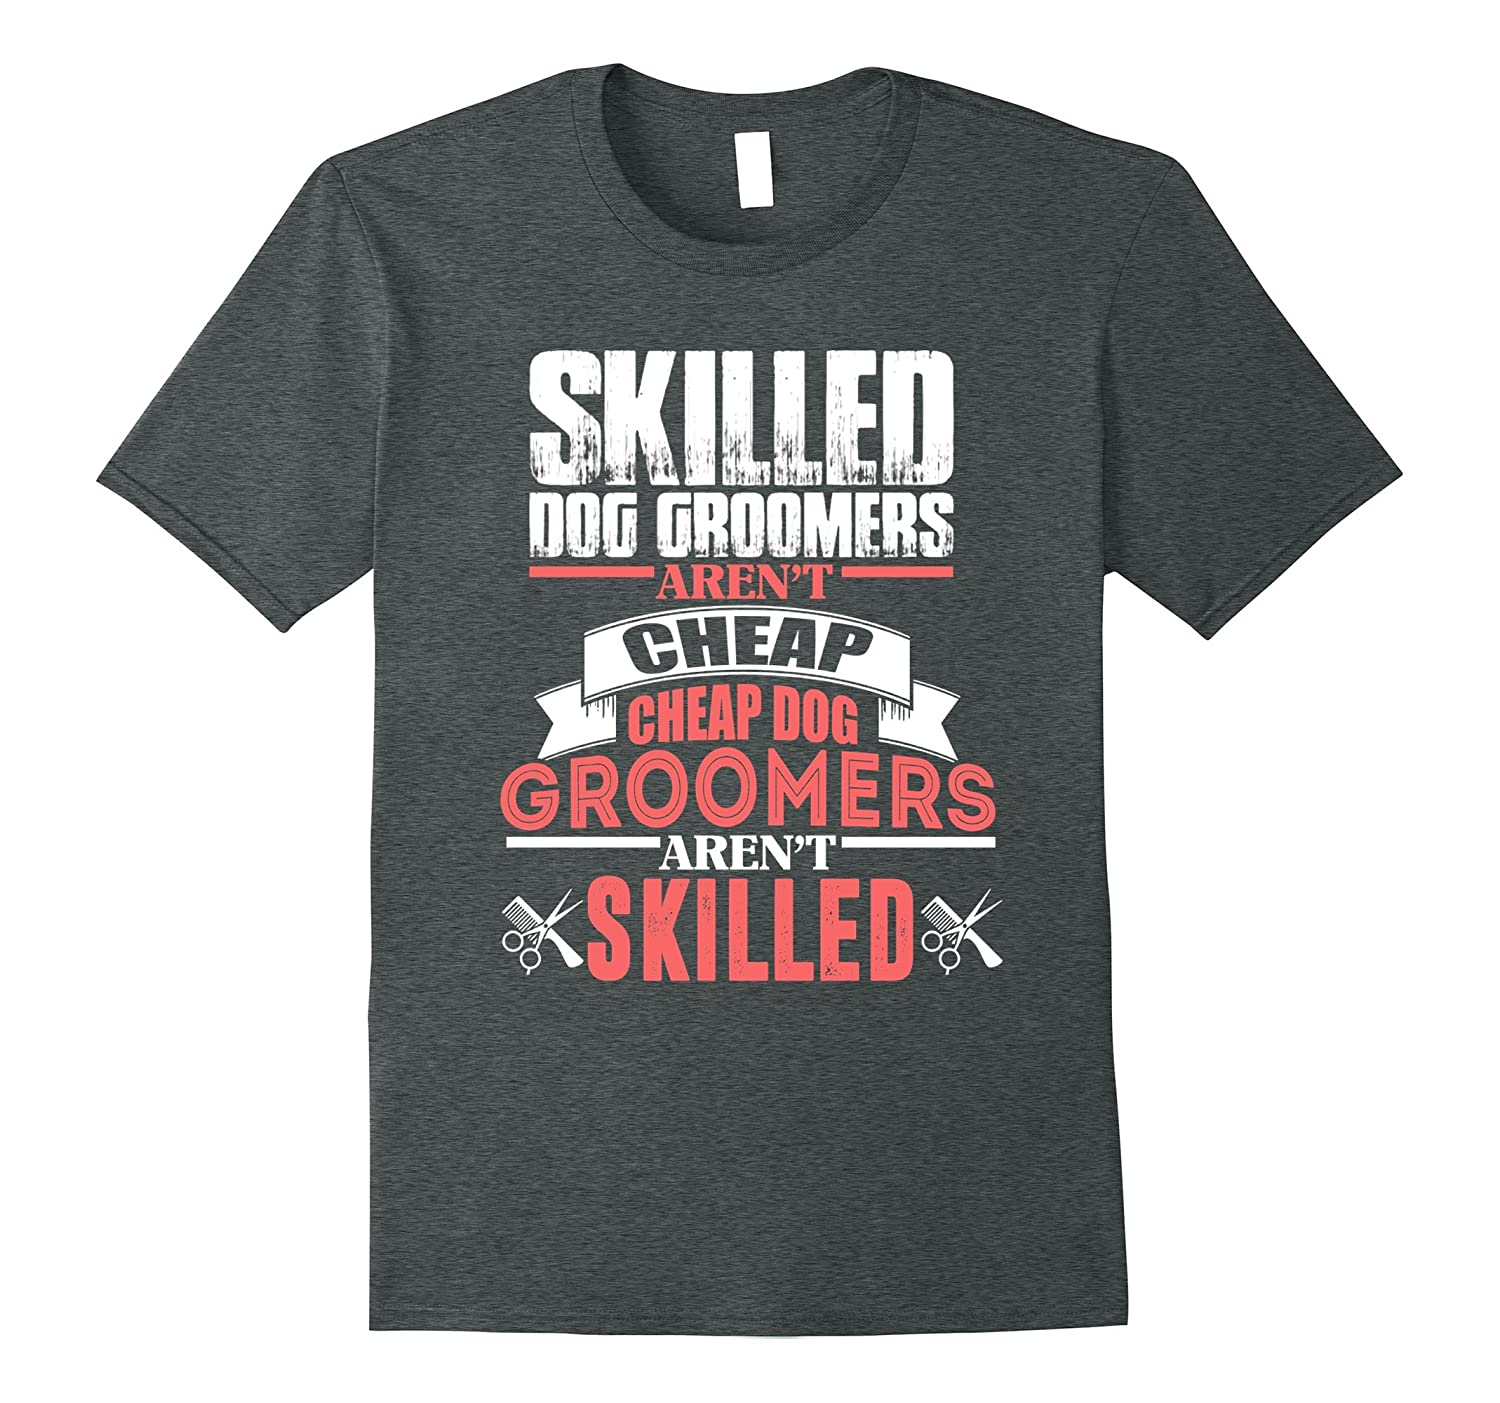 Dog Groomer T Shirt Skilled Dog Groomers Arent Cheap Anz